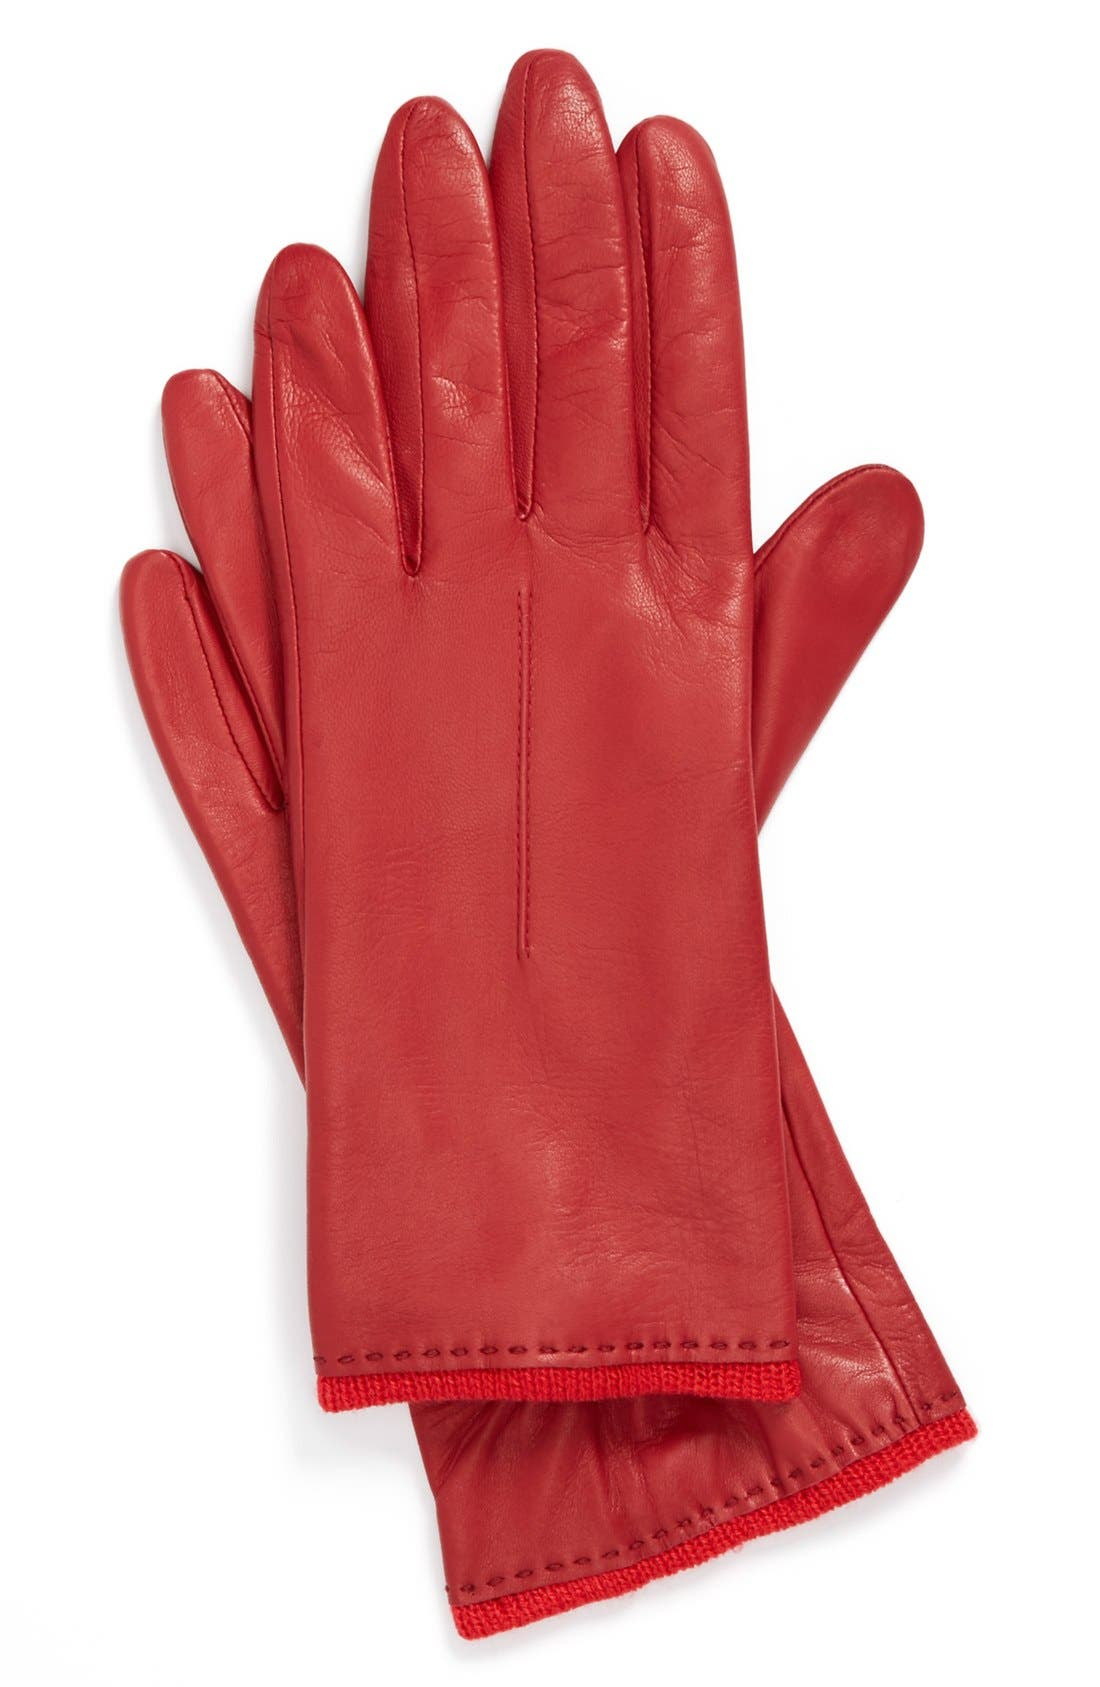 Main Image - Fownes Brothers Metisse Leather Glove (Special Purchase)